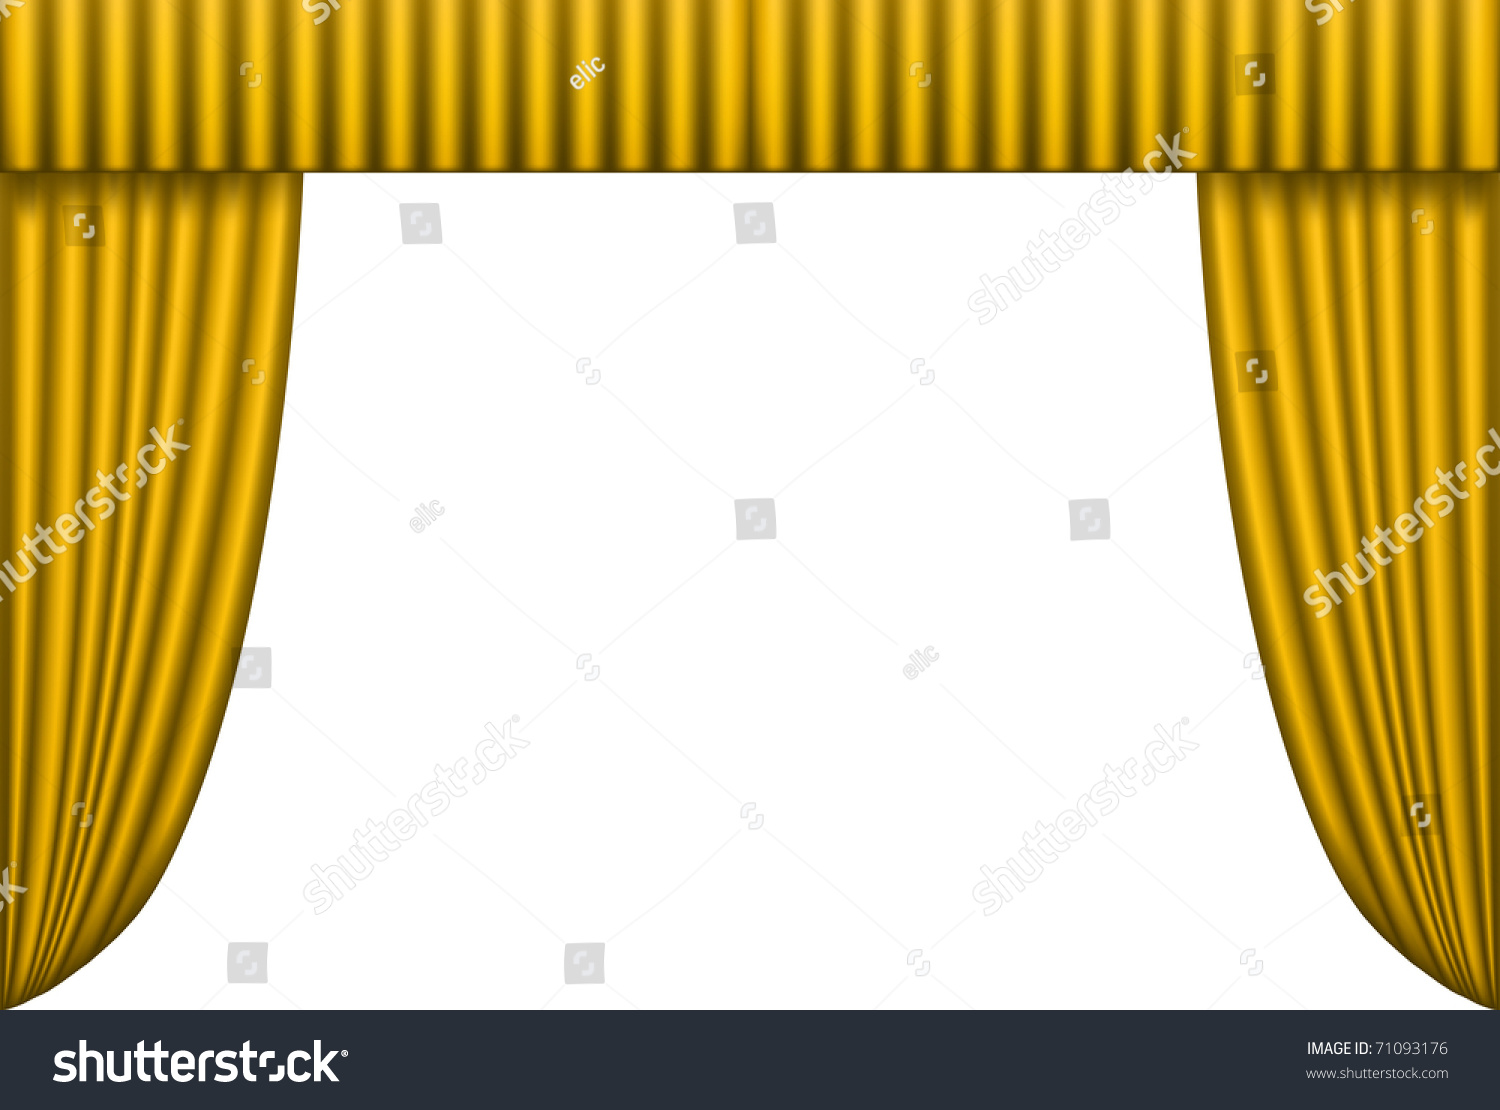 Gold stage curtain - Open Gold Theater Curtain Background Vector Illustration